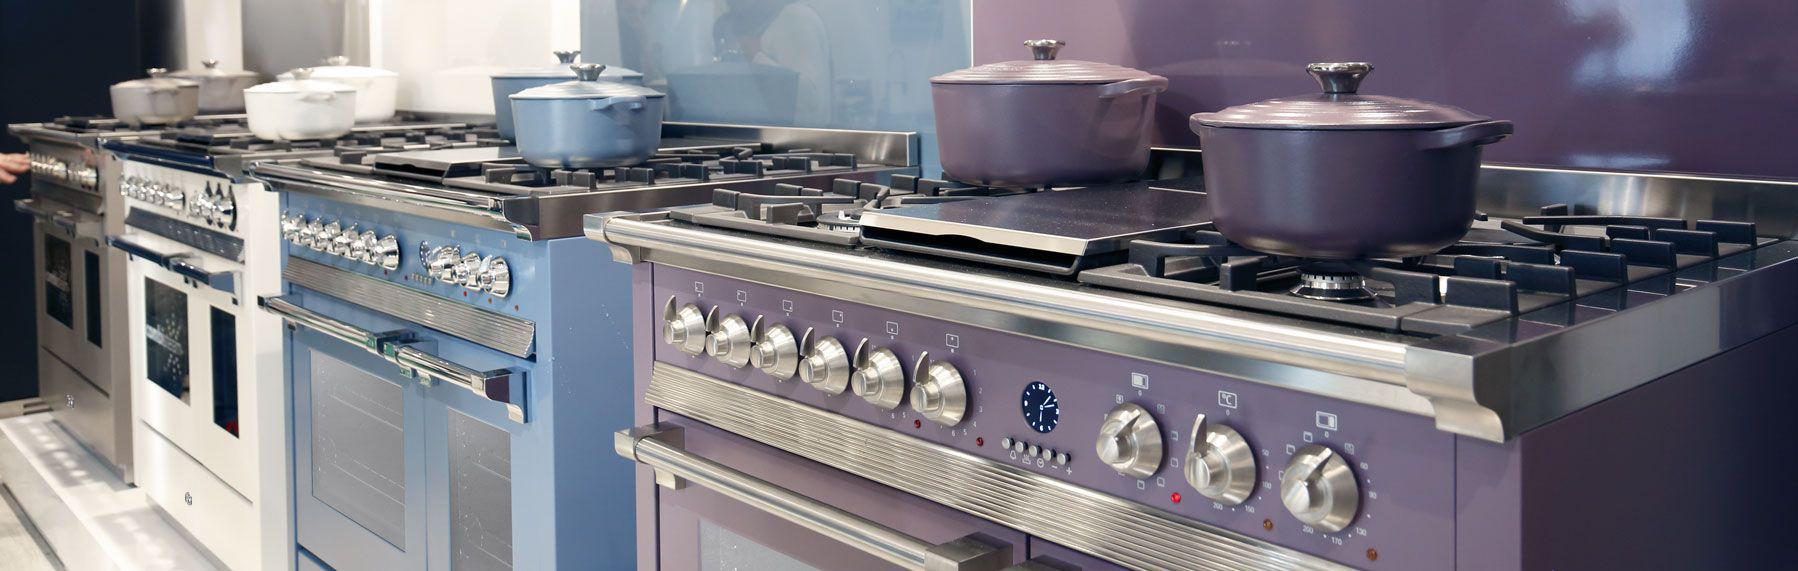 Range Cookers – Steel Cucine